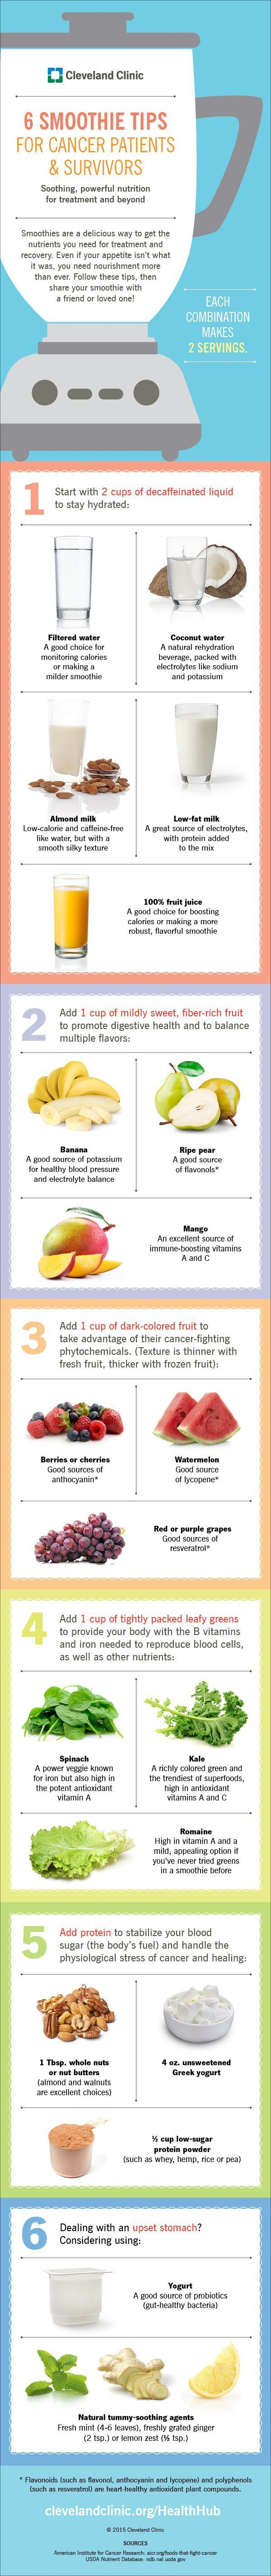 USEFUL MATERIAL: Just For U  6 tips for Smoothies for #cancer patients and survivors. #recipes #infographic